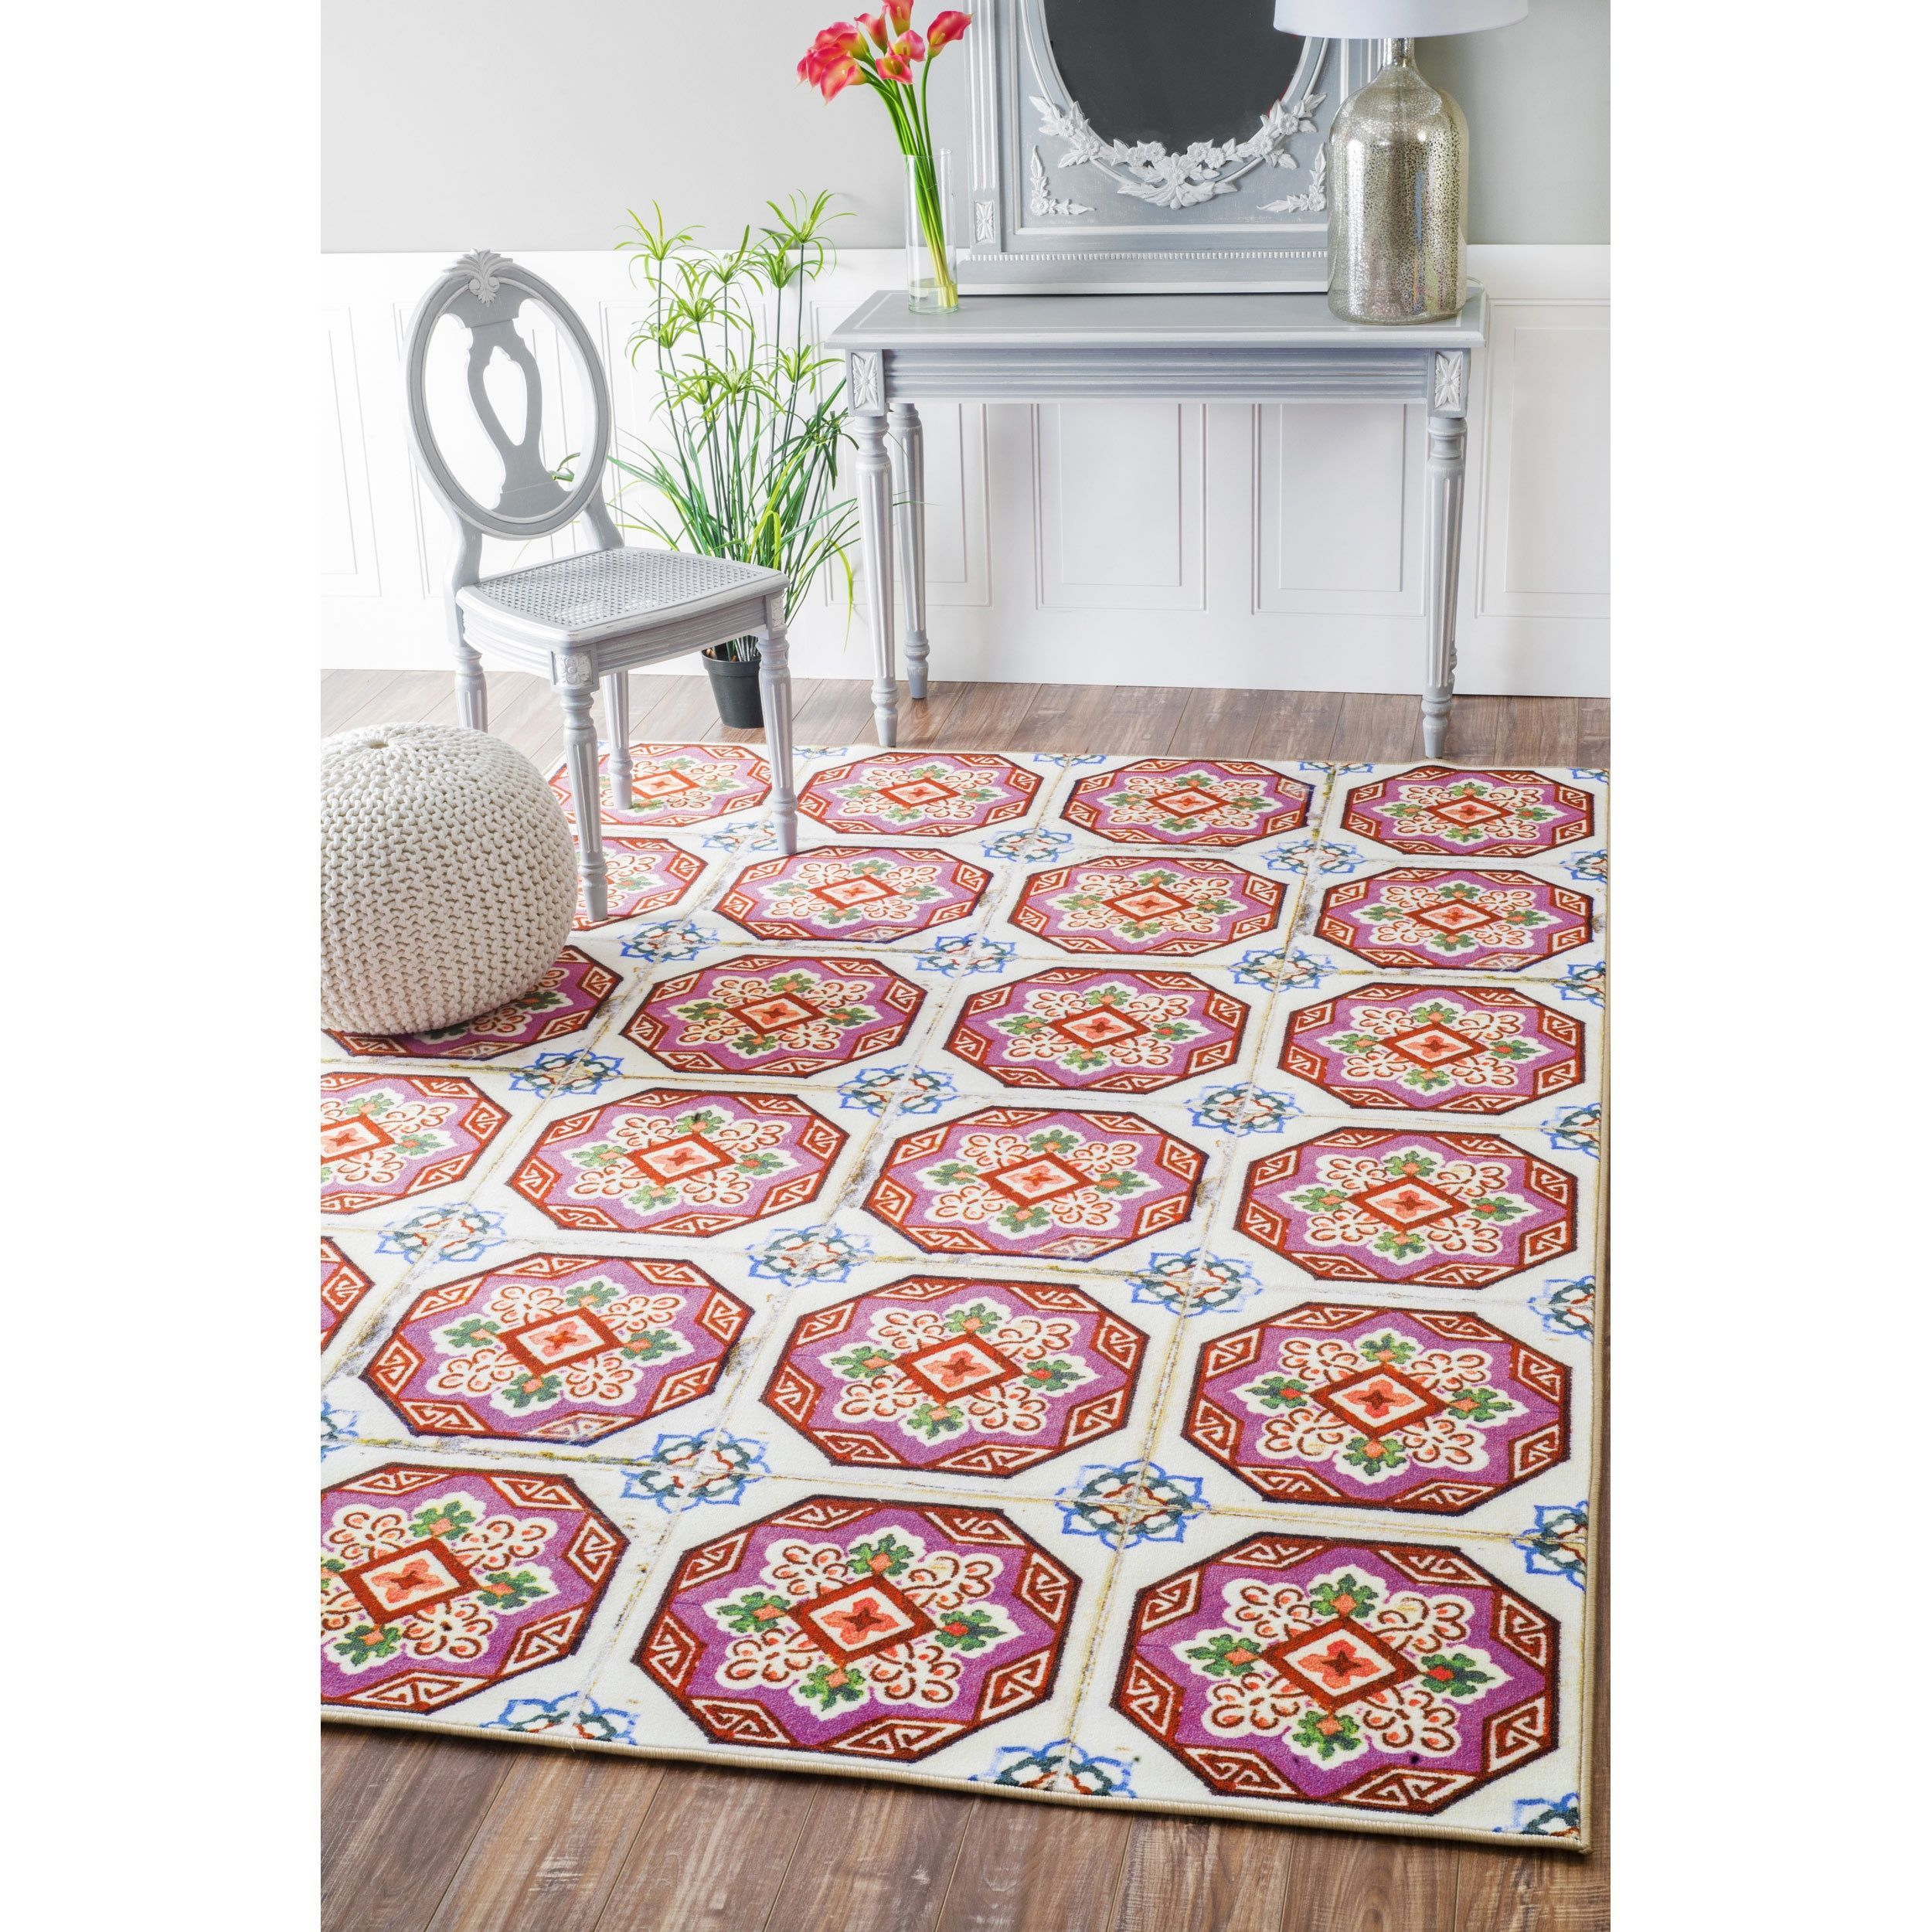 nuloom geometric fancy spanish tiles pink rug (' x ') (blue  - nuloom geometric fancy spanish tiles pink rug (' x ') (blue) size ' x' (synthetic fiber abstract)